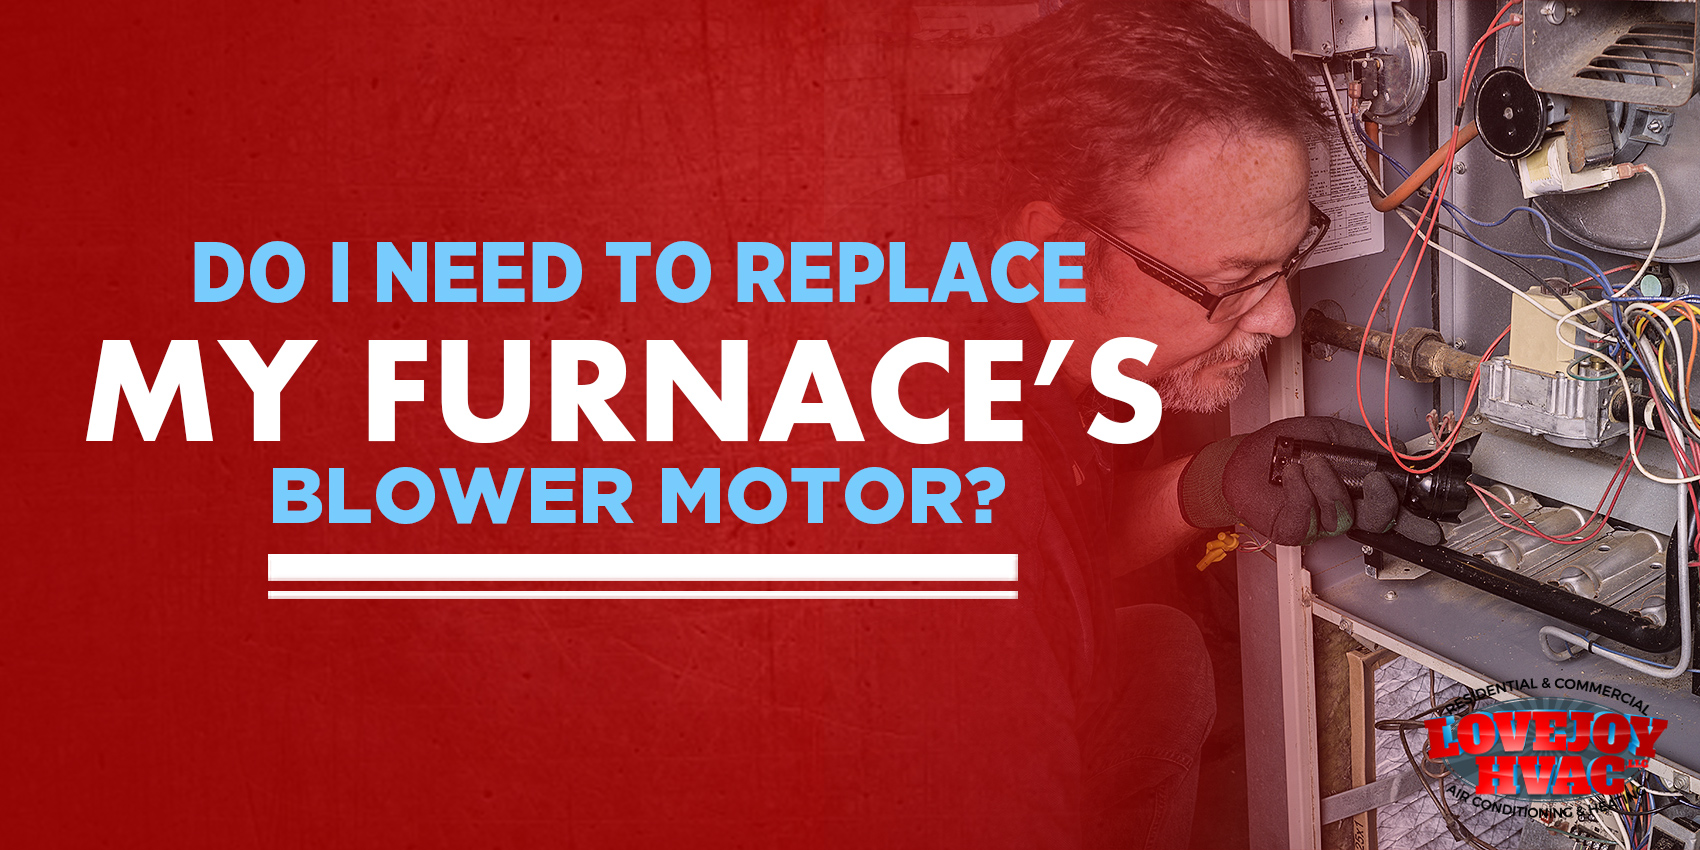 Do I need to replace my furnace blower motor